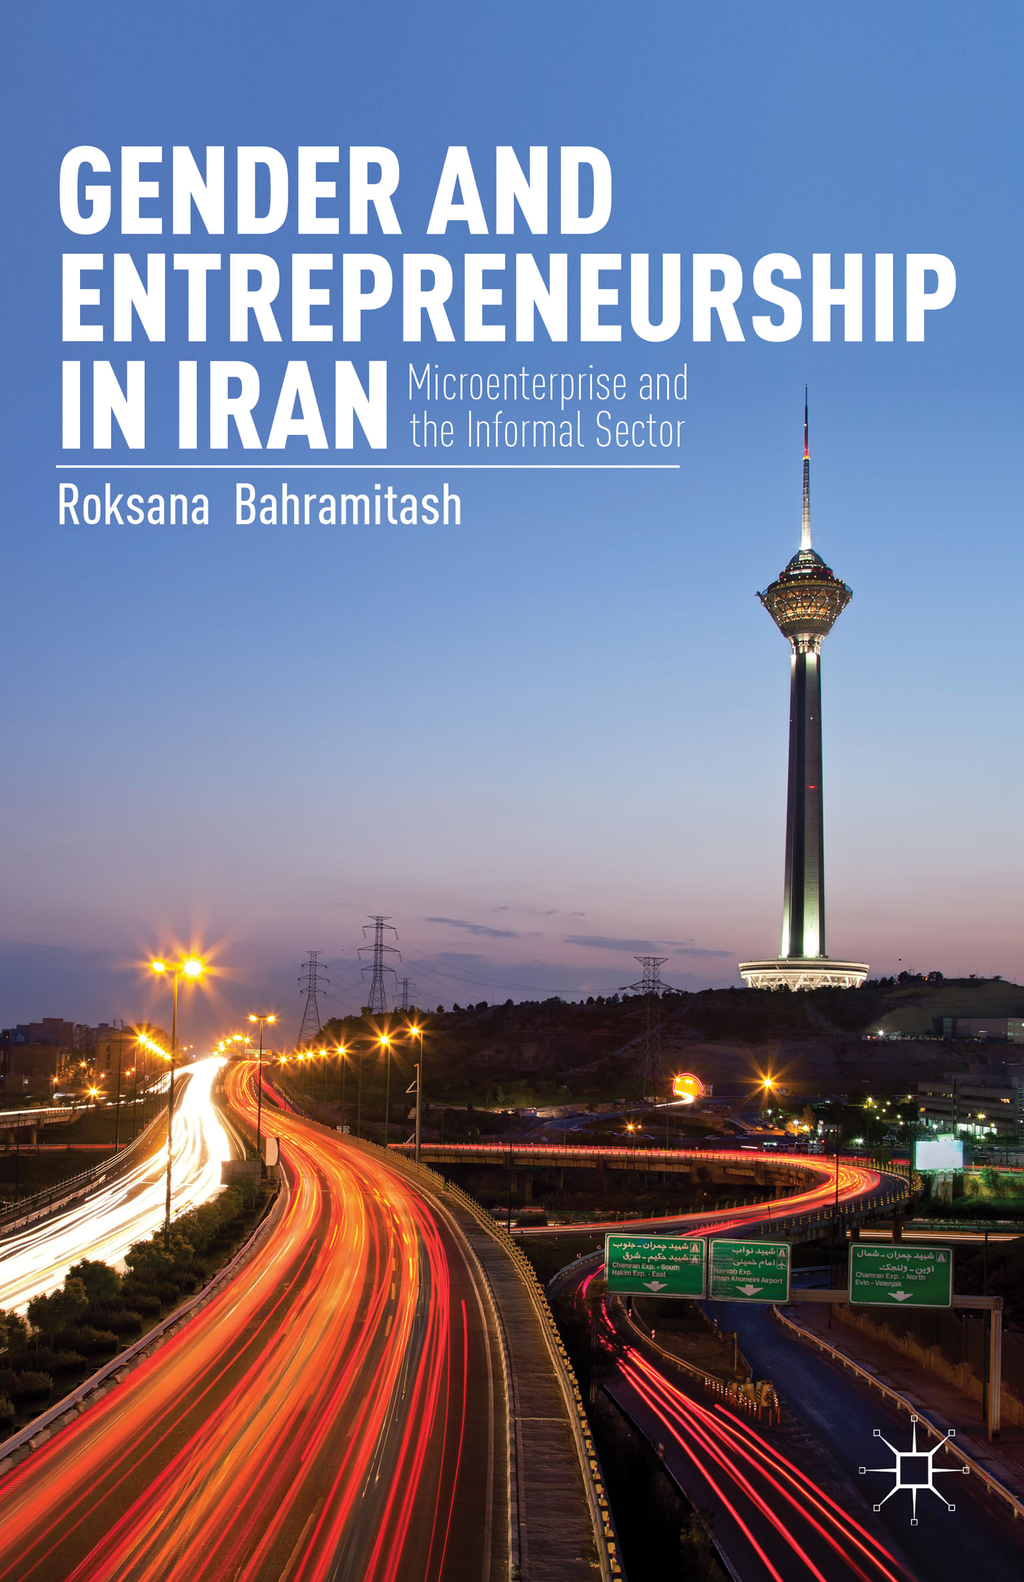 Gender and Entrepreneurship in Iran Microenterprise and the Informal Sector